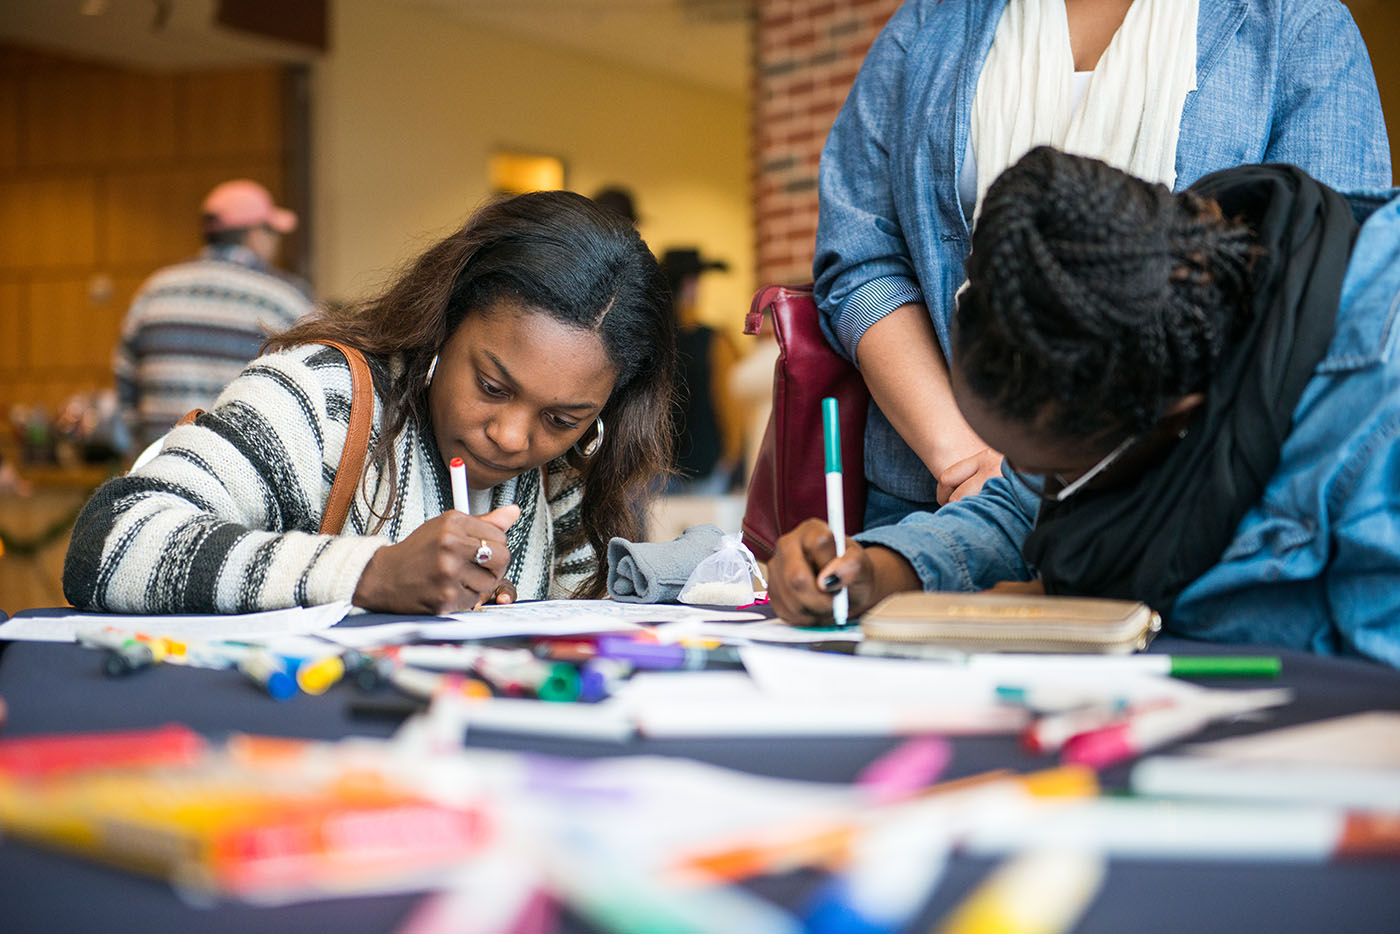 Two students coloring siting at a table.